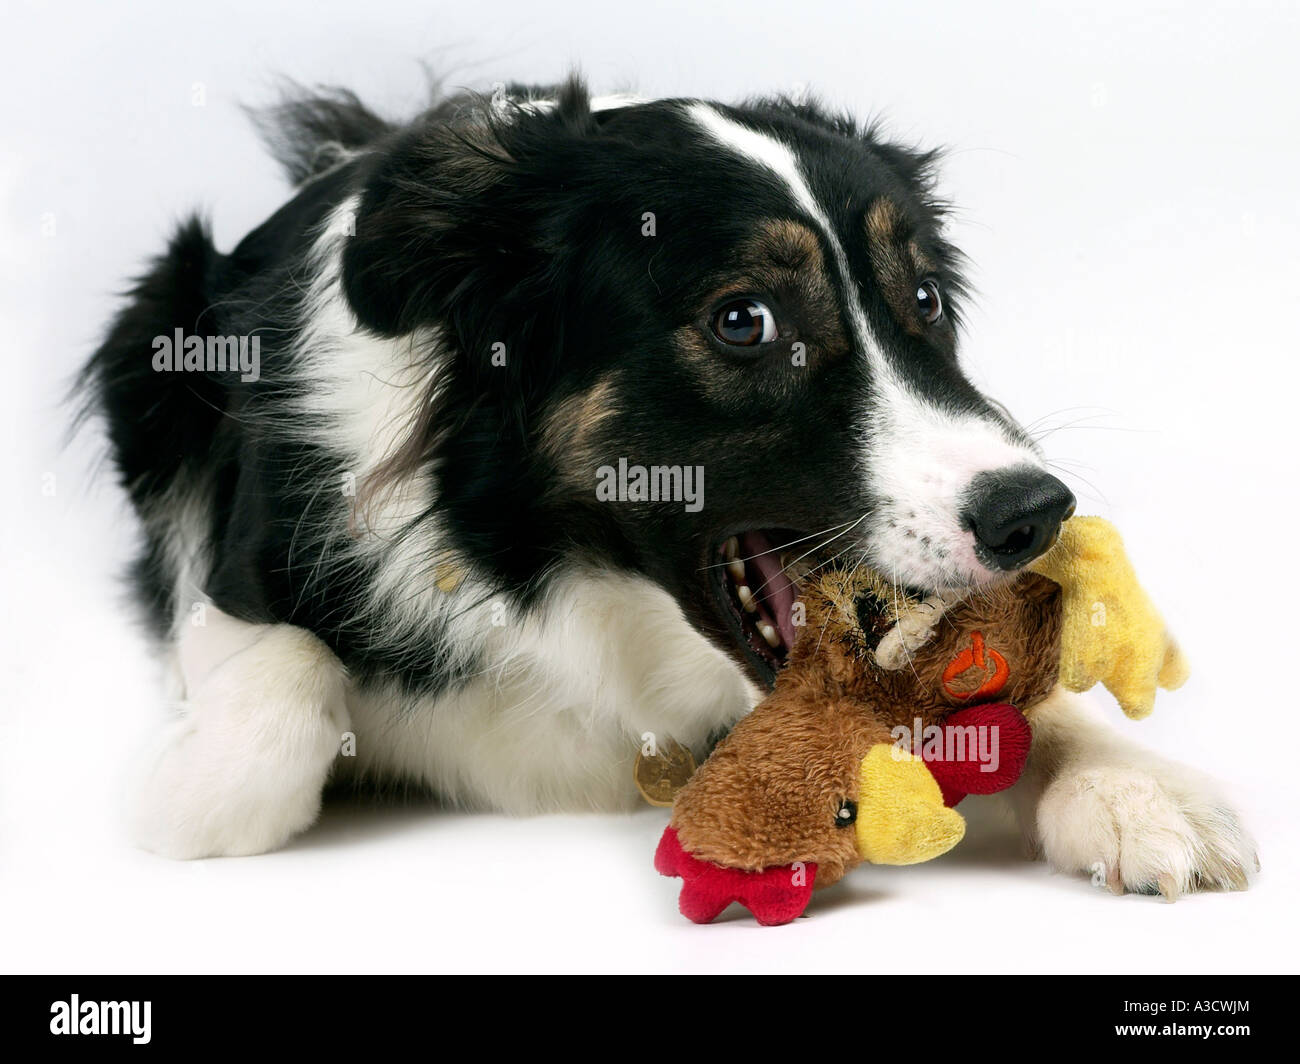 A collie chewing on a cuddly toy. - Stock Image